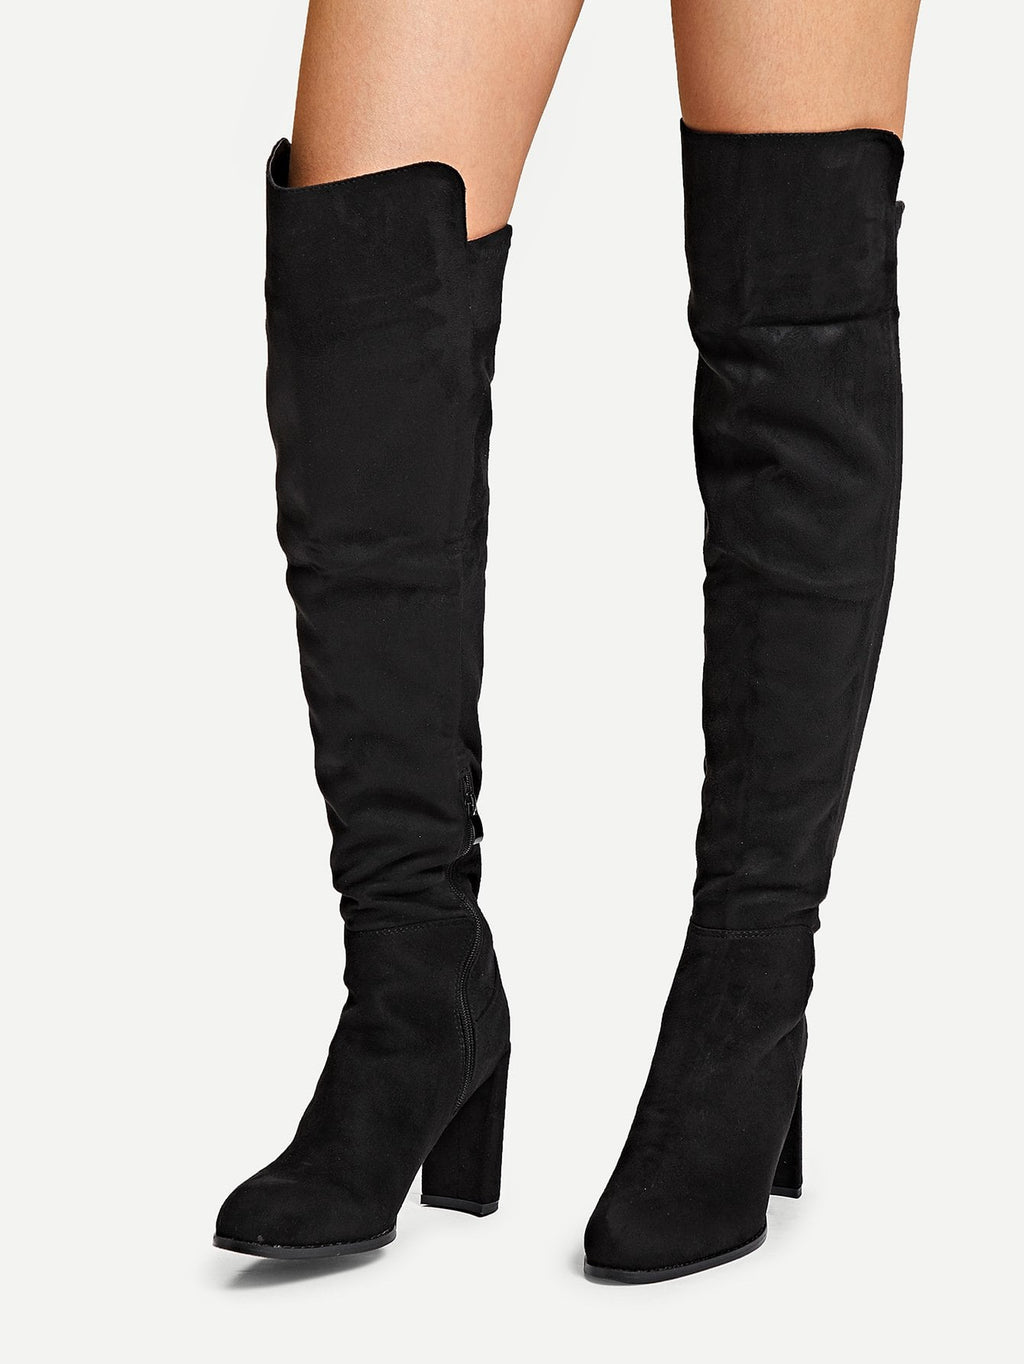 Women Boots - Suede Over The Knee Boots